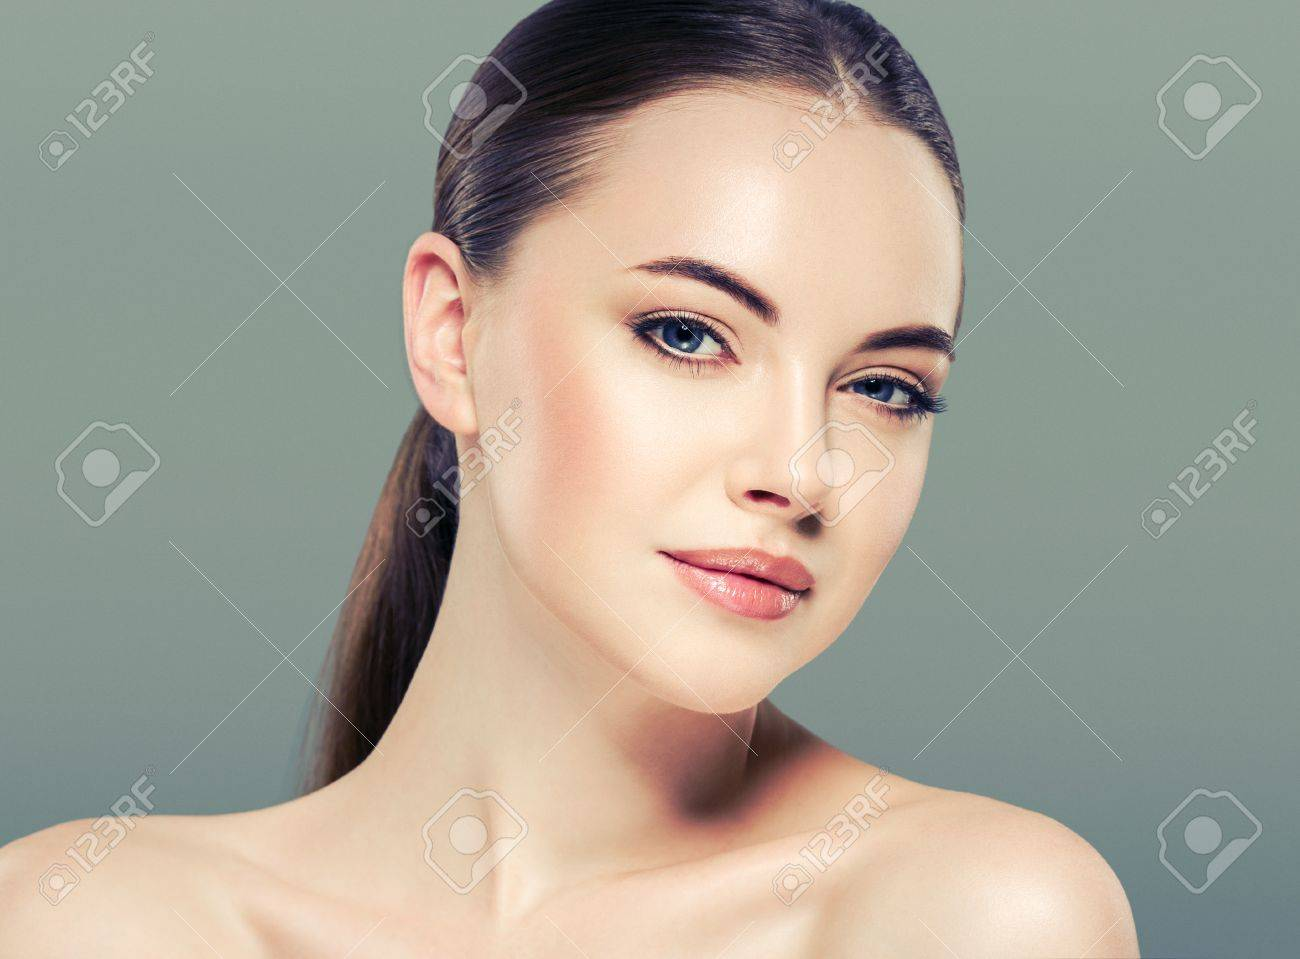 Woman beauty portrait isolated on white skin care concept on blue background - 66087859